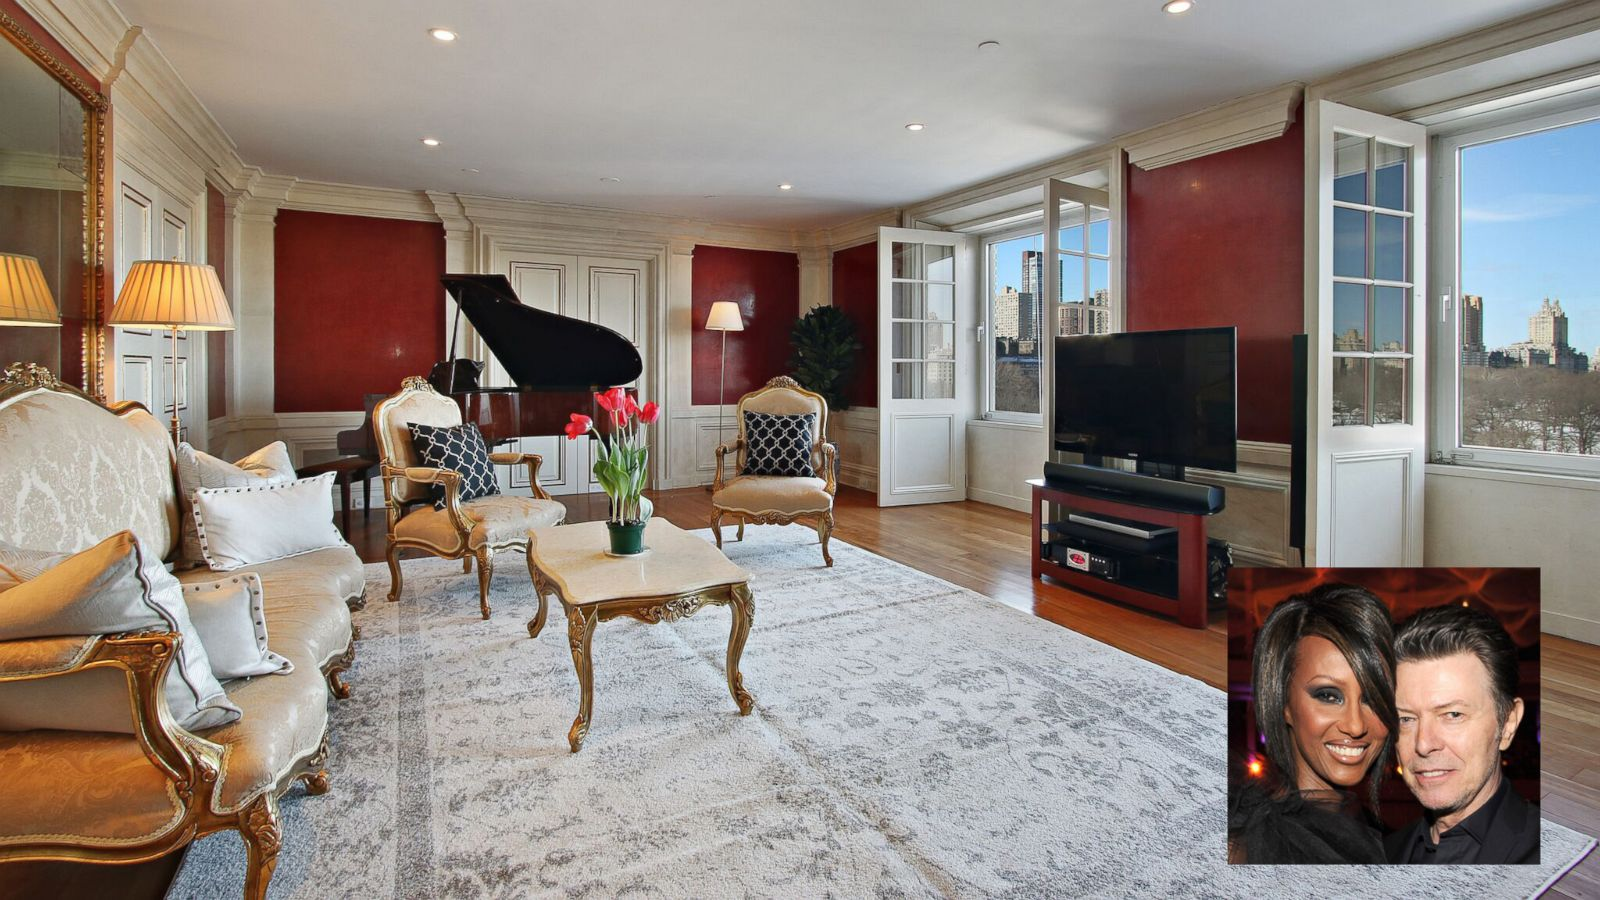 Nyc Apartment Featuring David Bowie S Piano On The Market For 6 5 Million Abc News